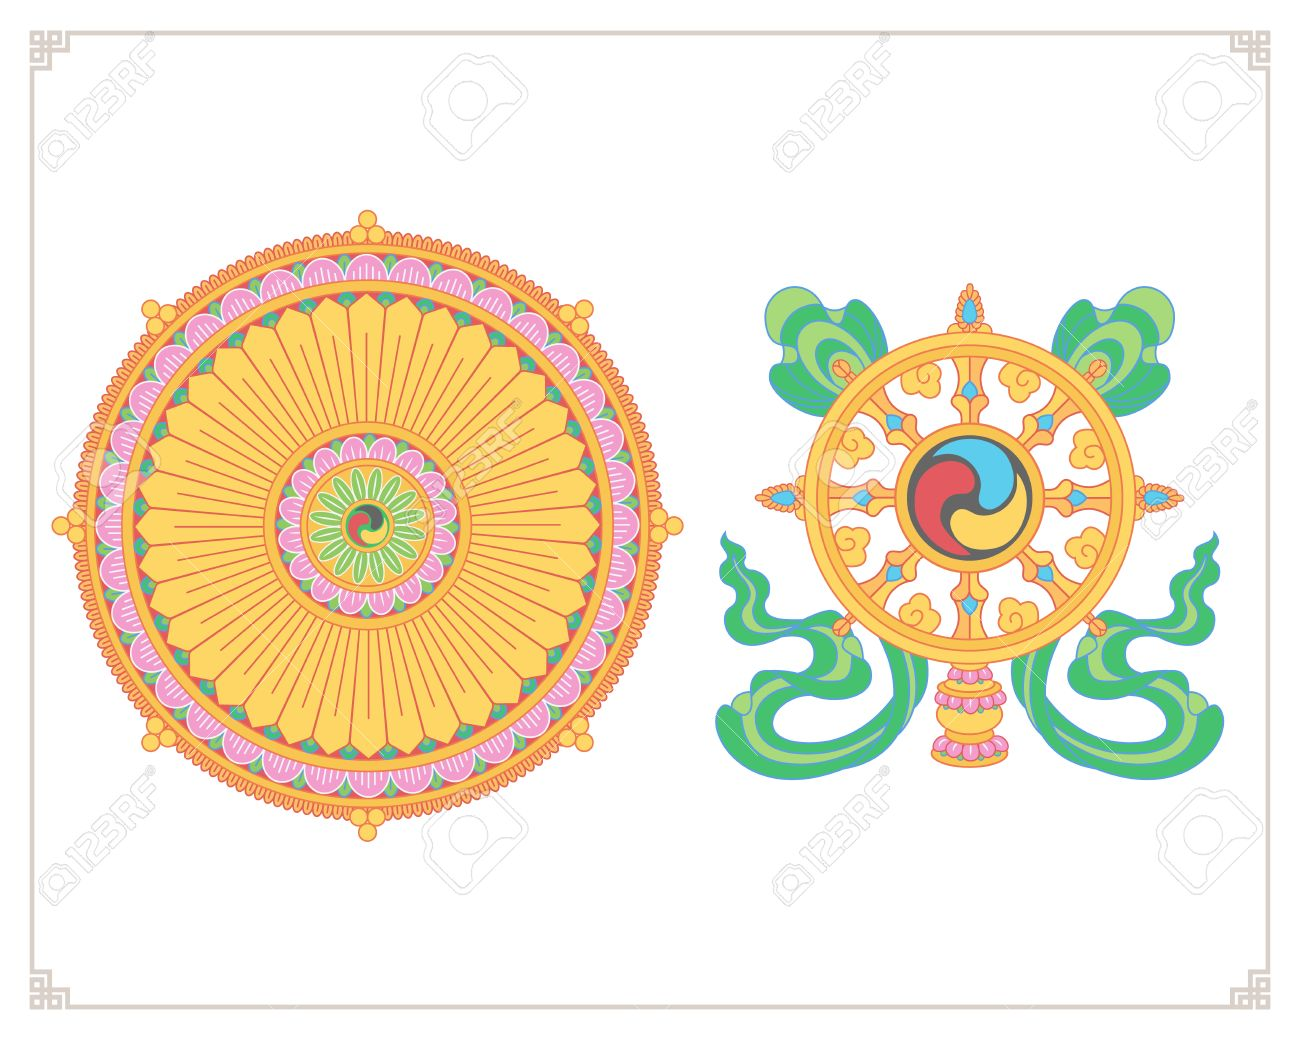 Buddhist symbols images gallery symbol and sign ideas dharma wheel dharmachakra icons wheel of dharma in flat design dharma wheel dharmachakra icons wheel of biocorpaavc